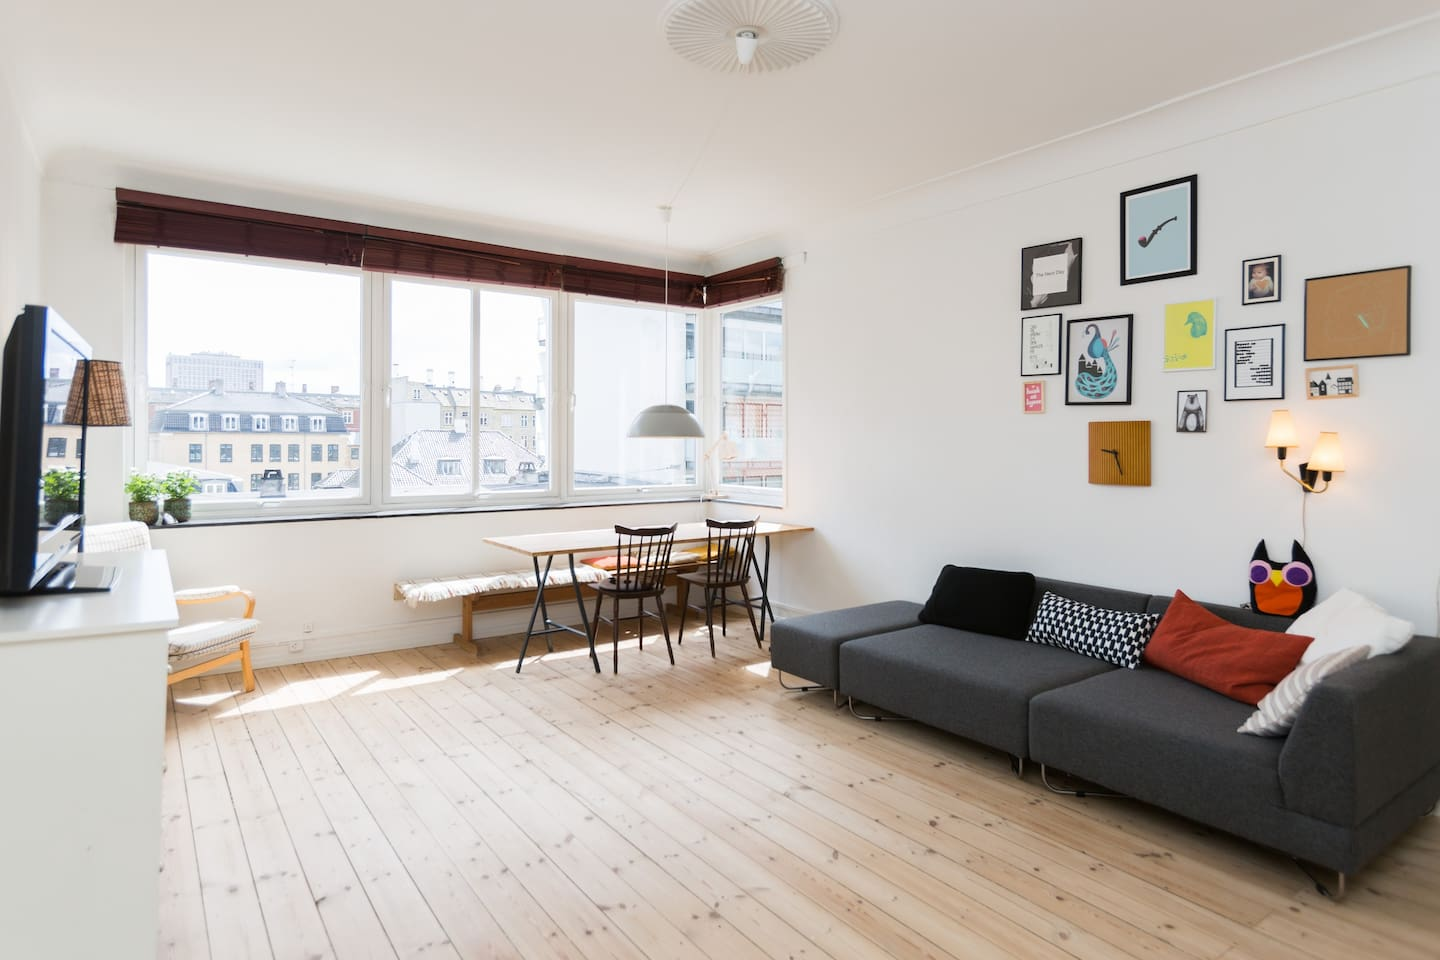 Our large and bright living room with beautiful wooden floors. The large window section allows for a lot of light.